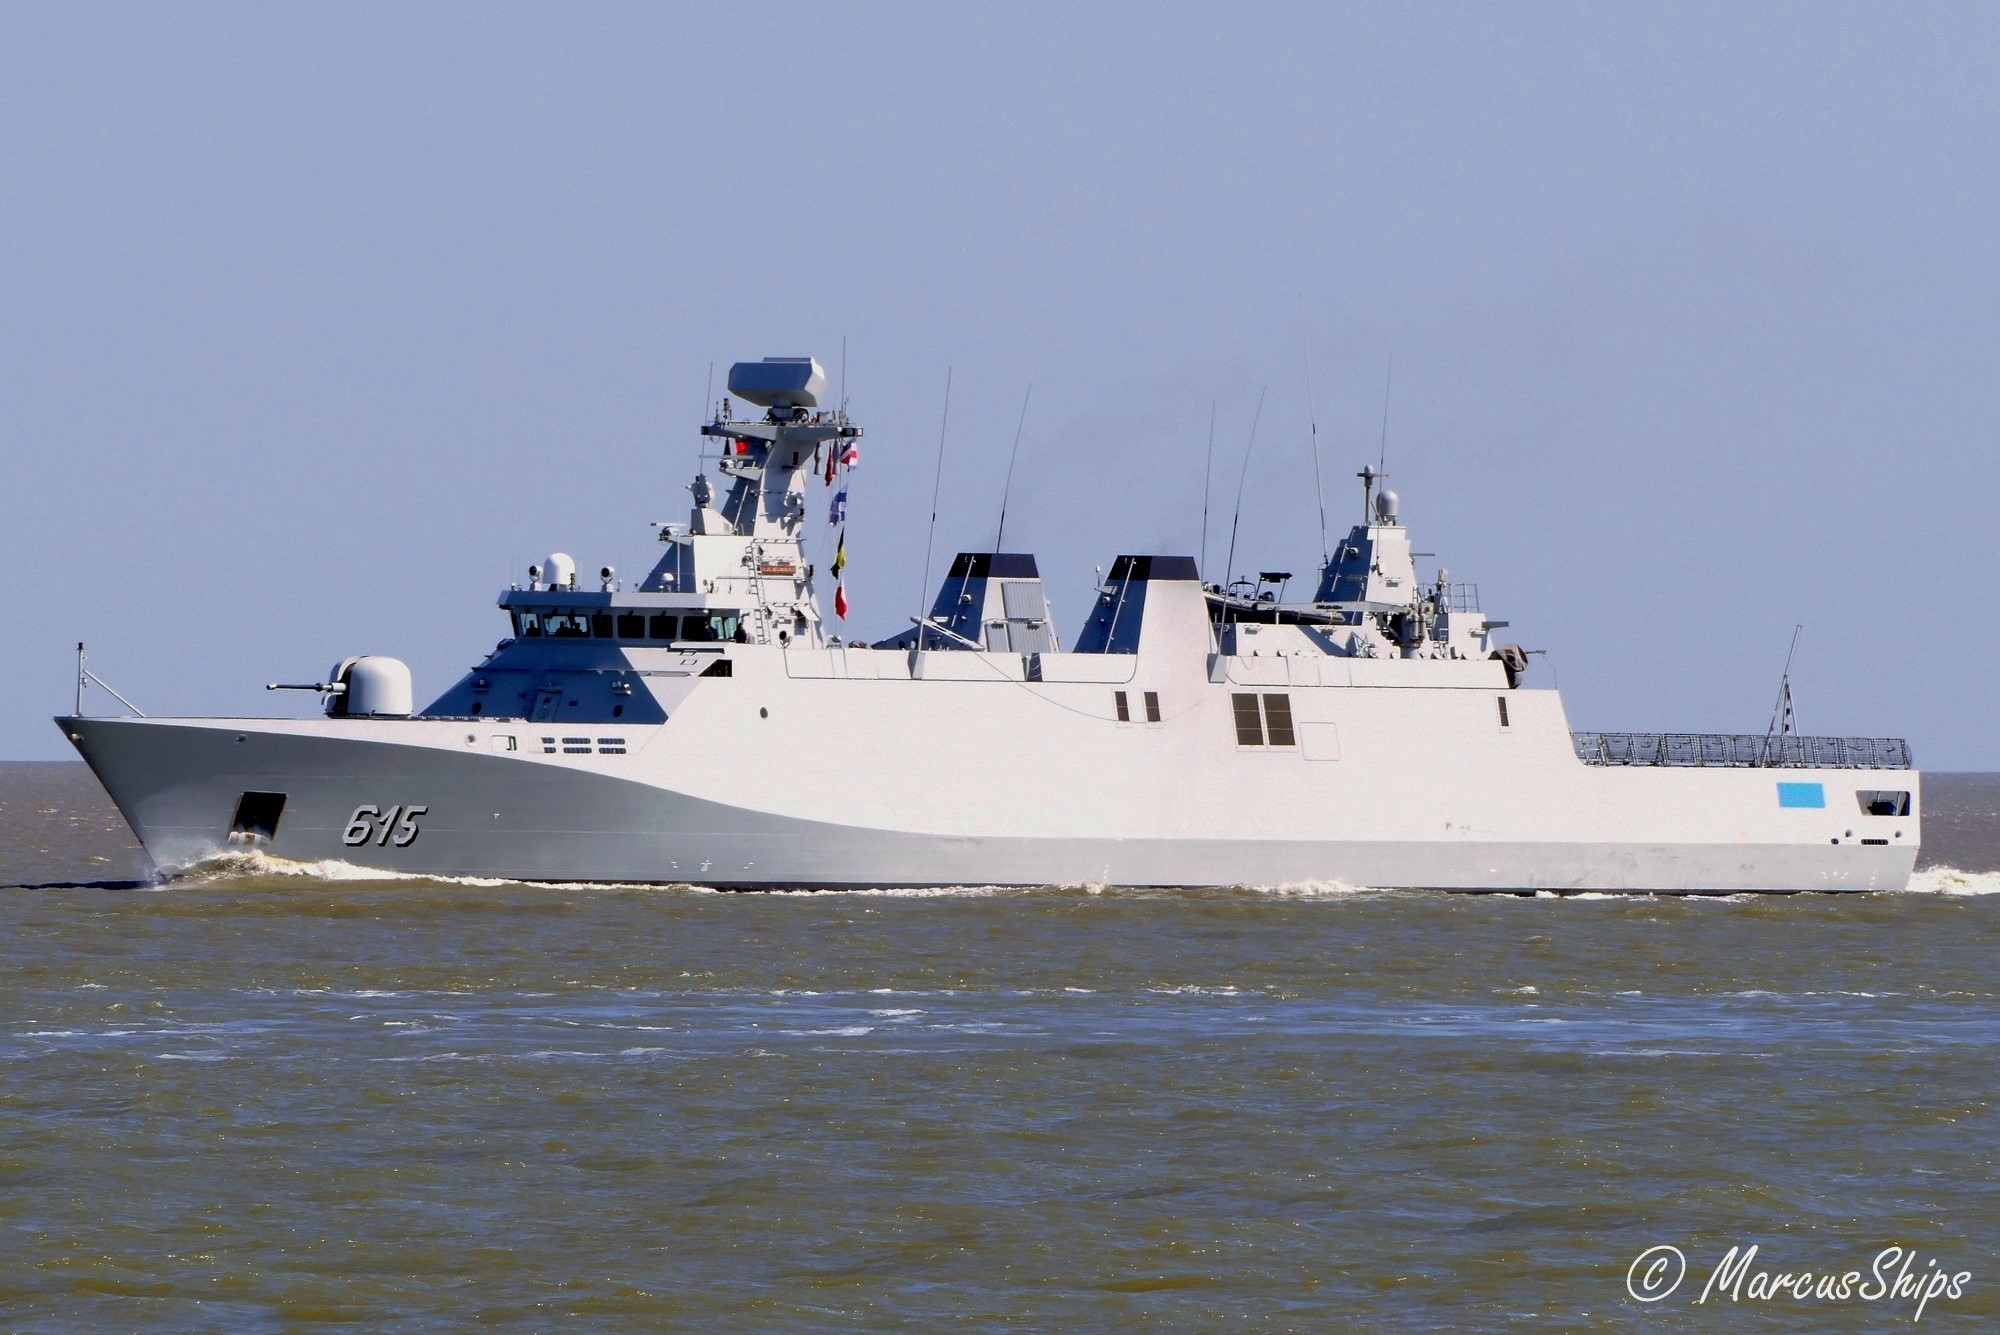 Royal Moroccan Navy Sigma class frigates / Frégates marocaines multimissions Sigma - Page 25 3062444